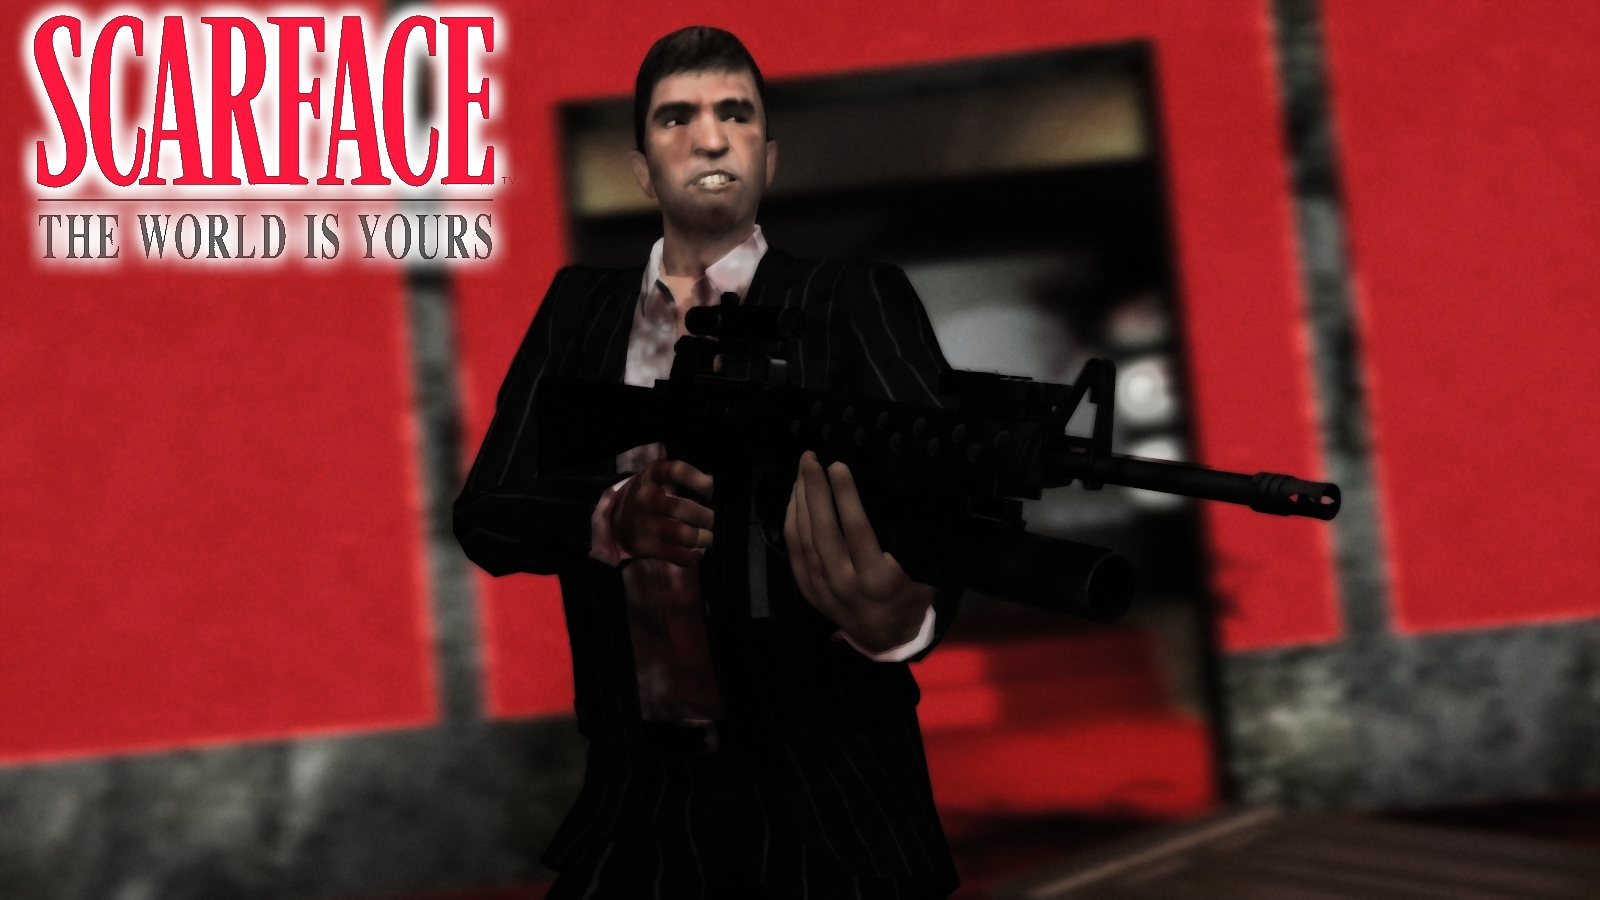 Scarface backgrounds wallpapersafari - The world is yours wallpaper ...